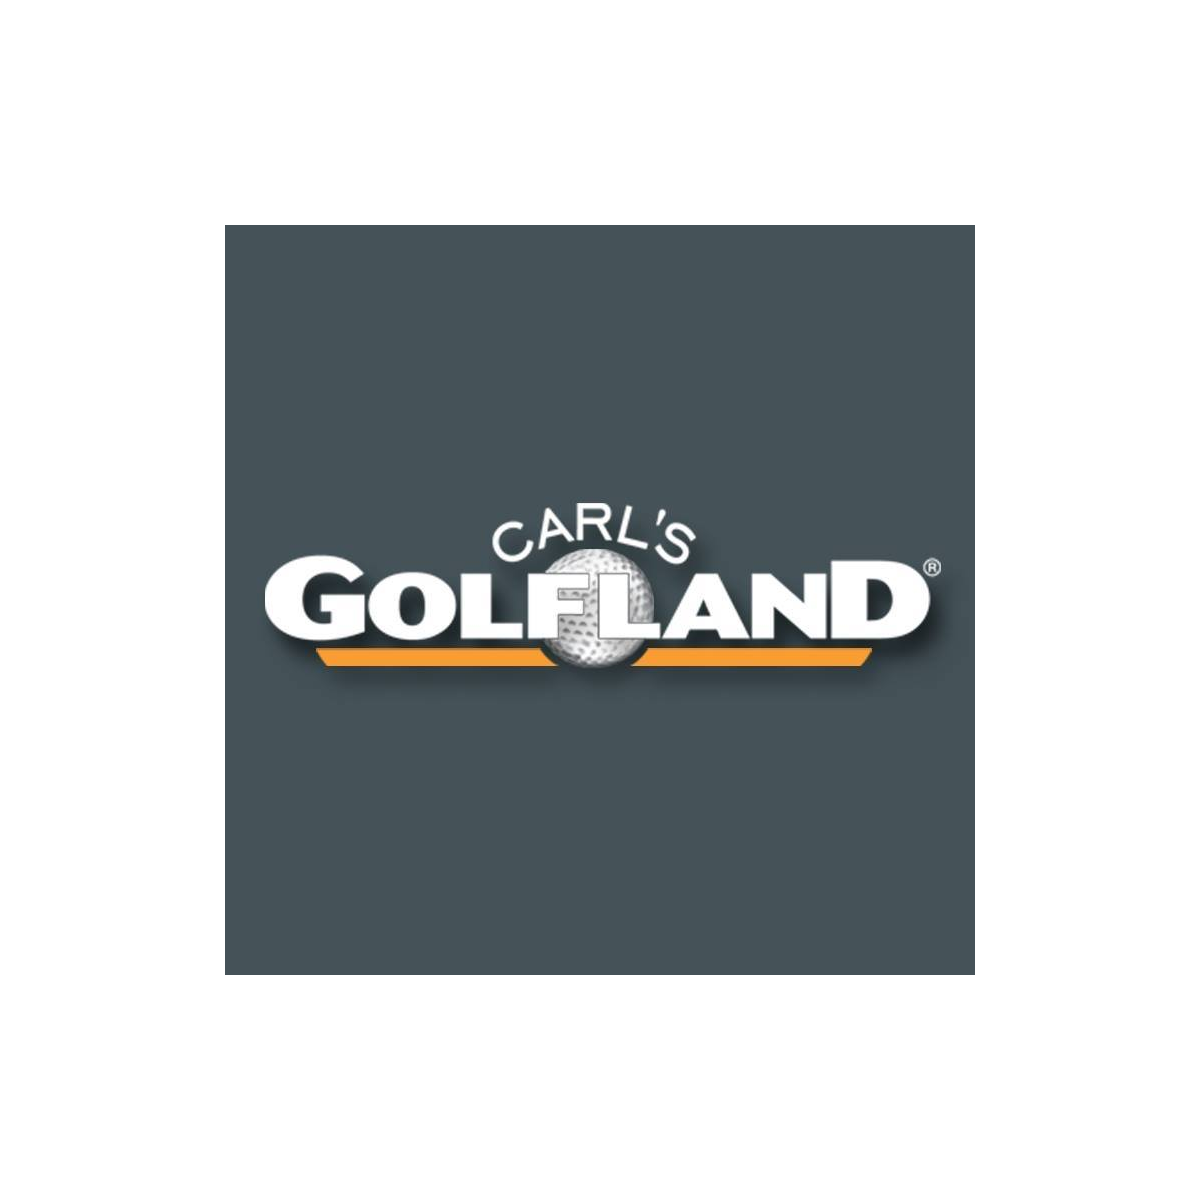 Carl's Golfland